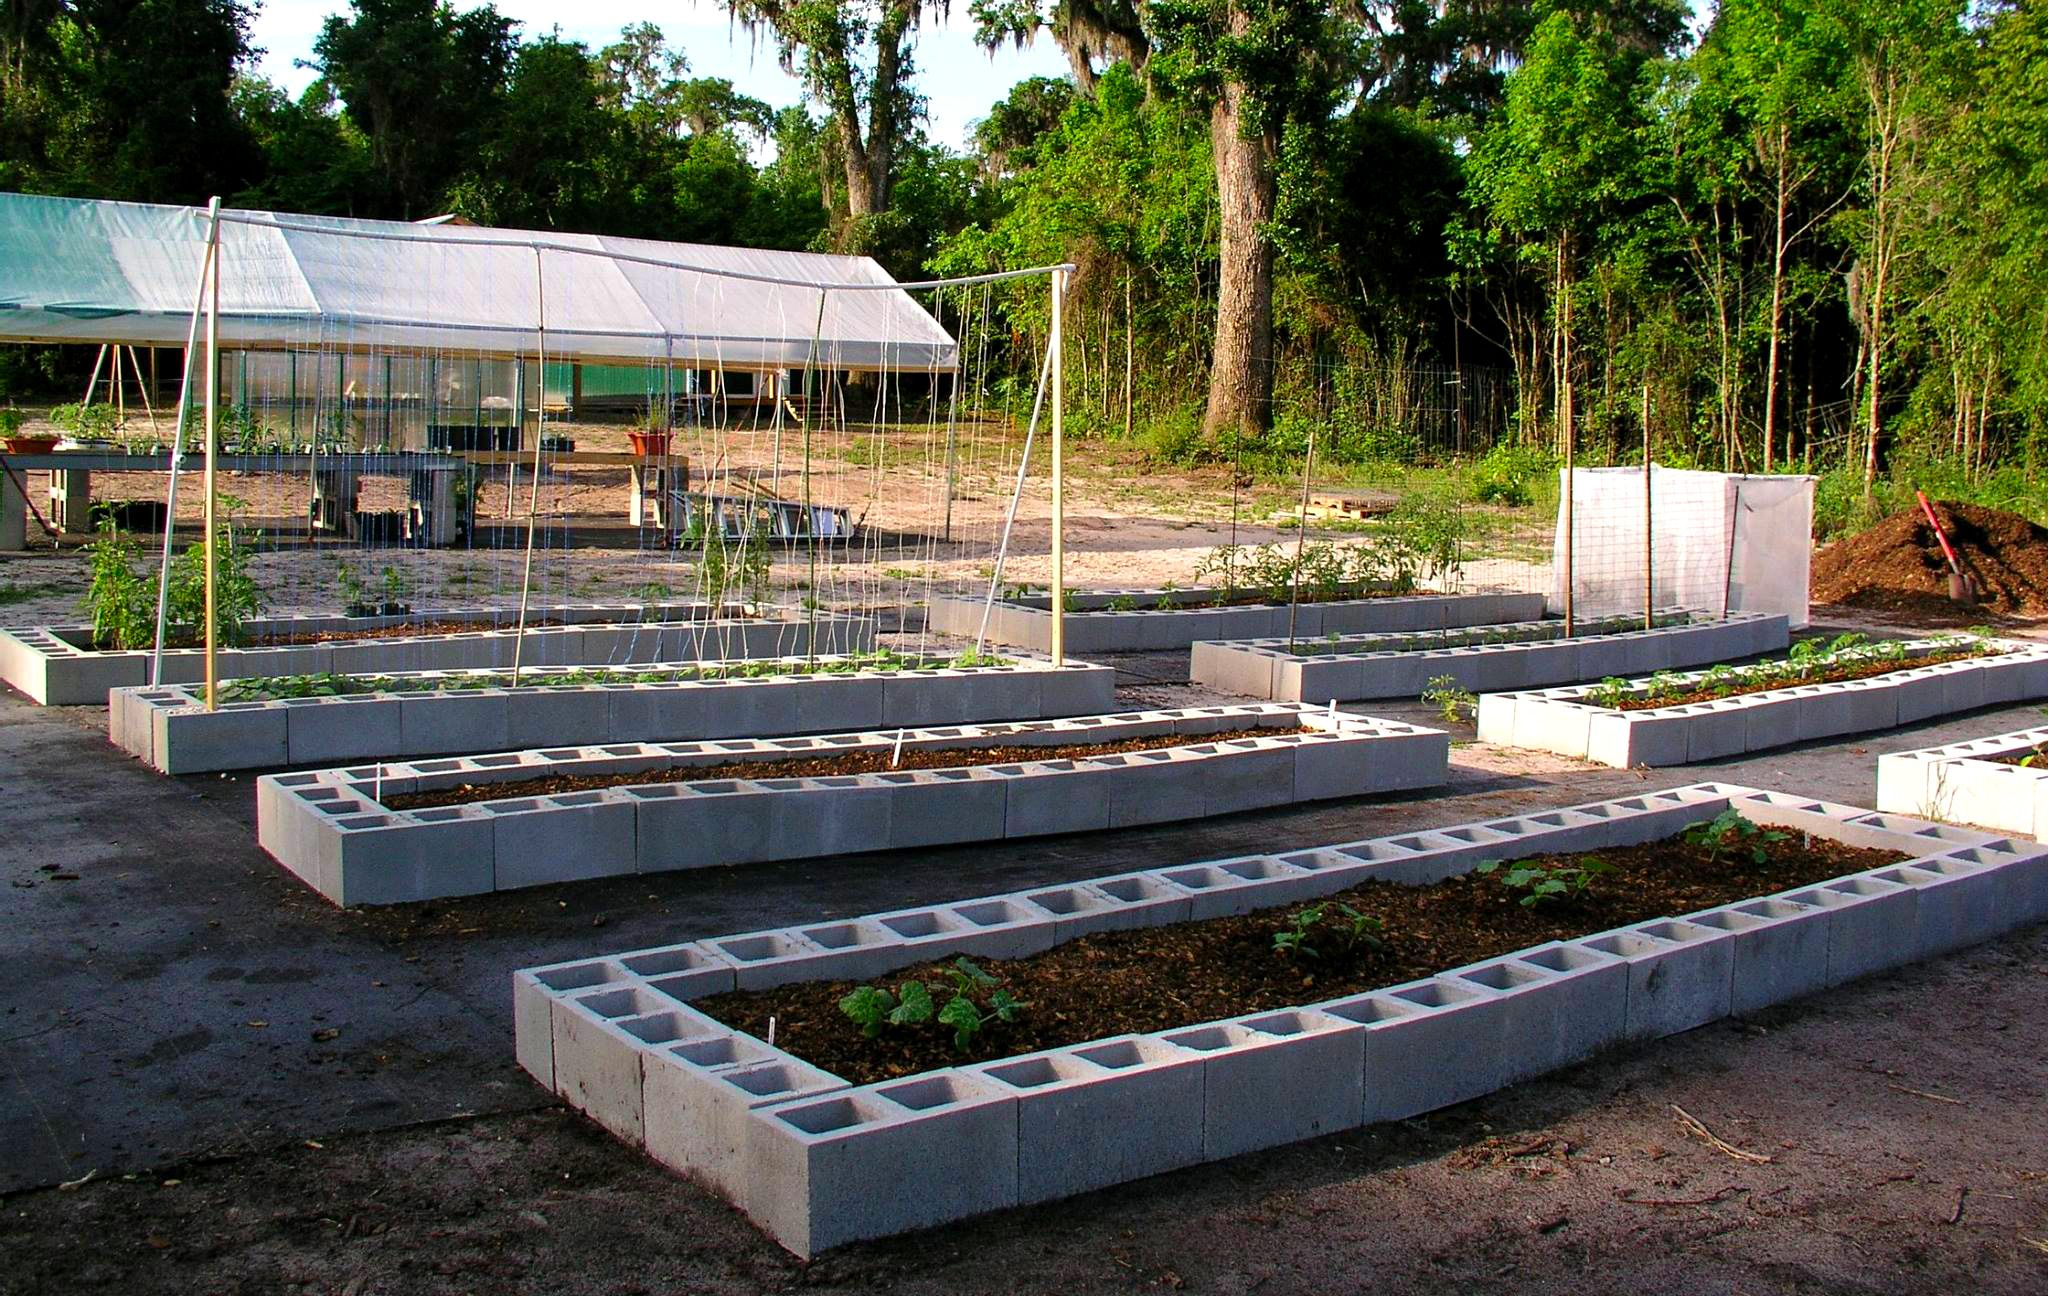 Concrete Block Raised Beds Urban Homesteading